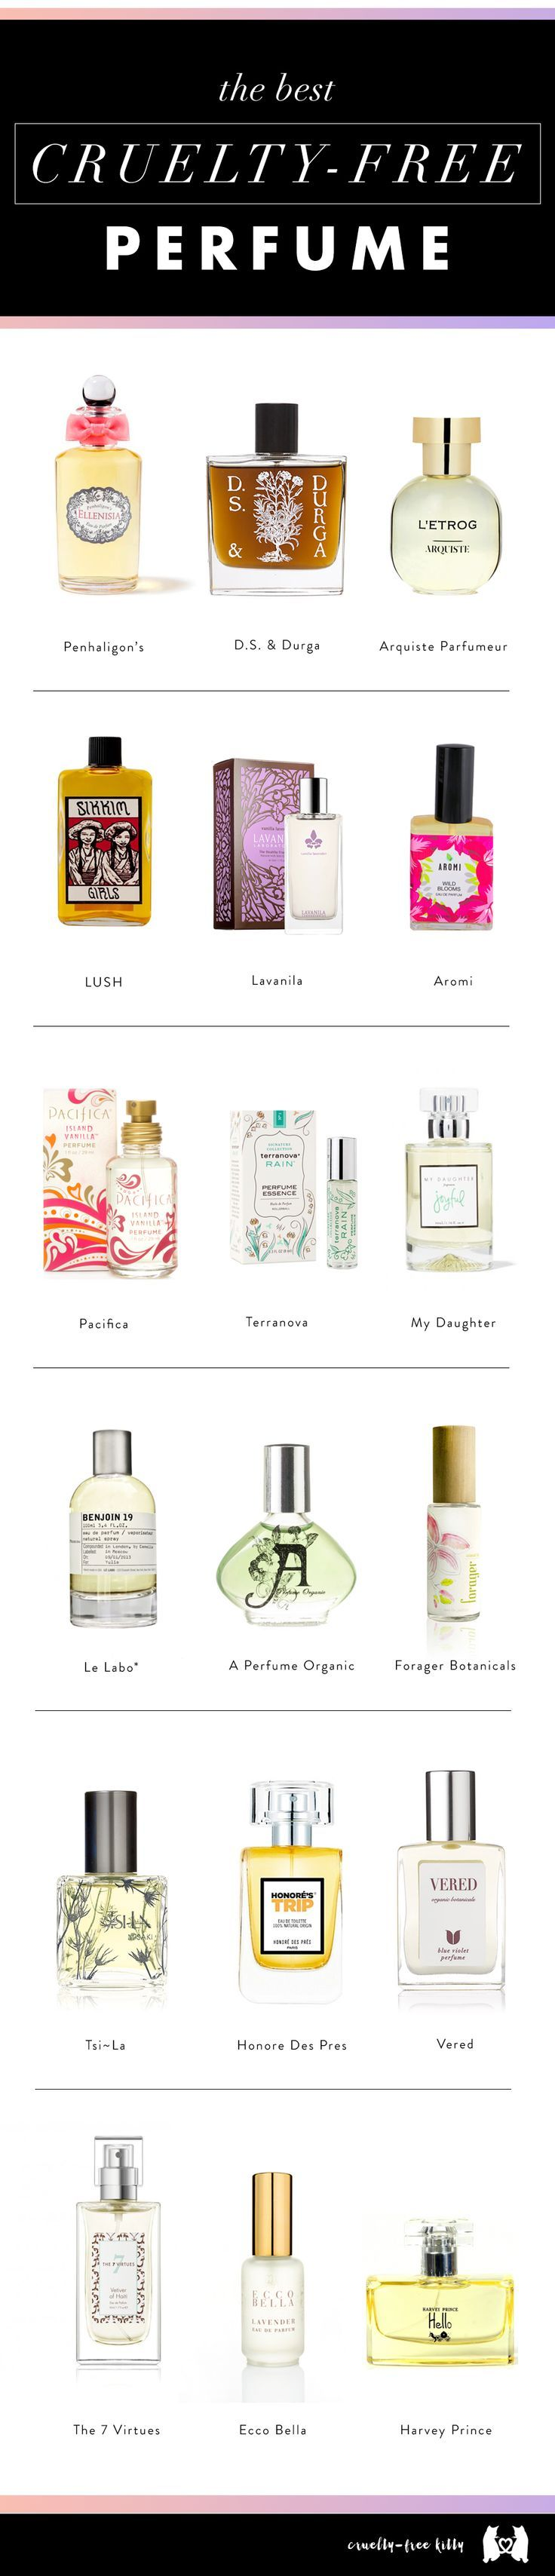 Perfume companies that don't test on animals.